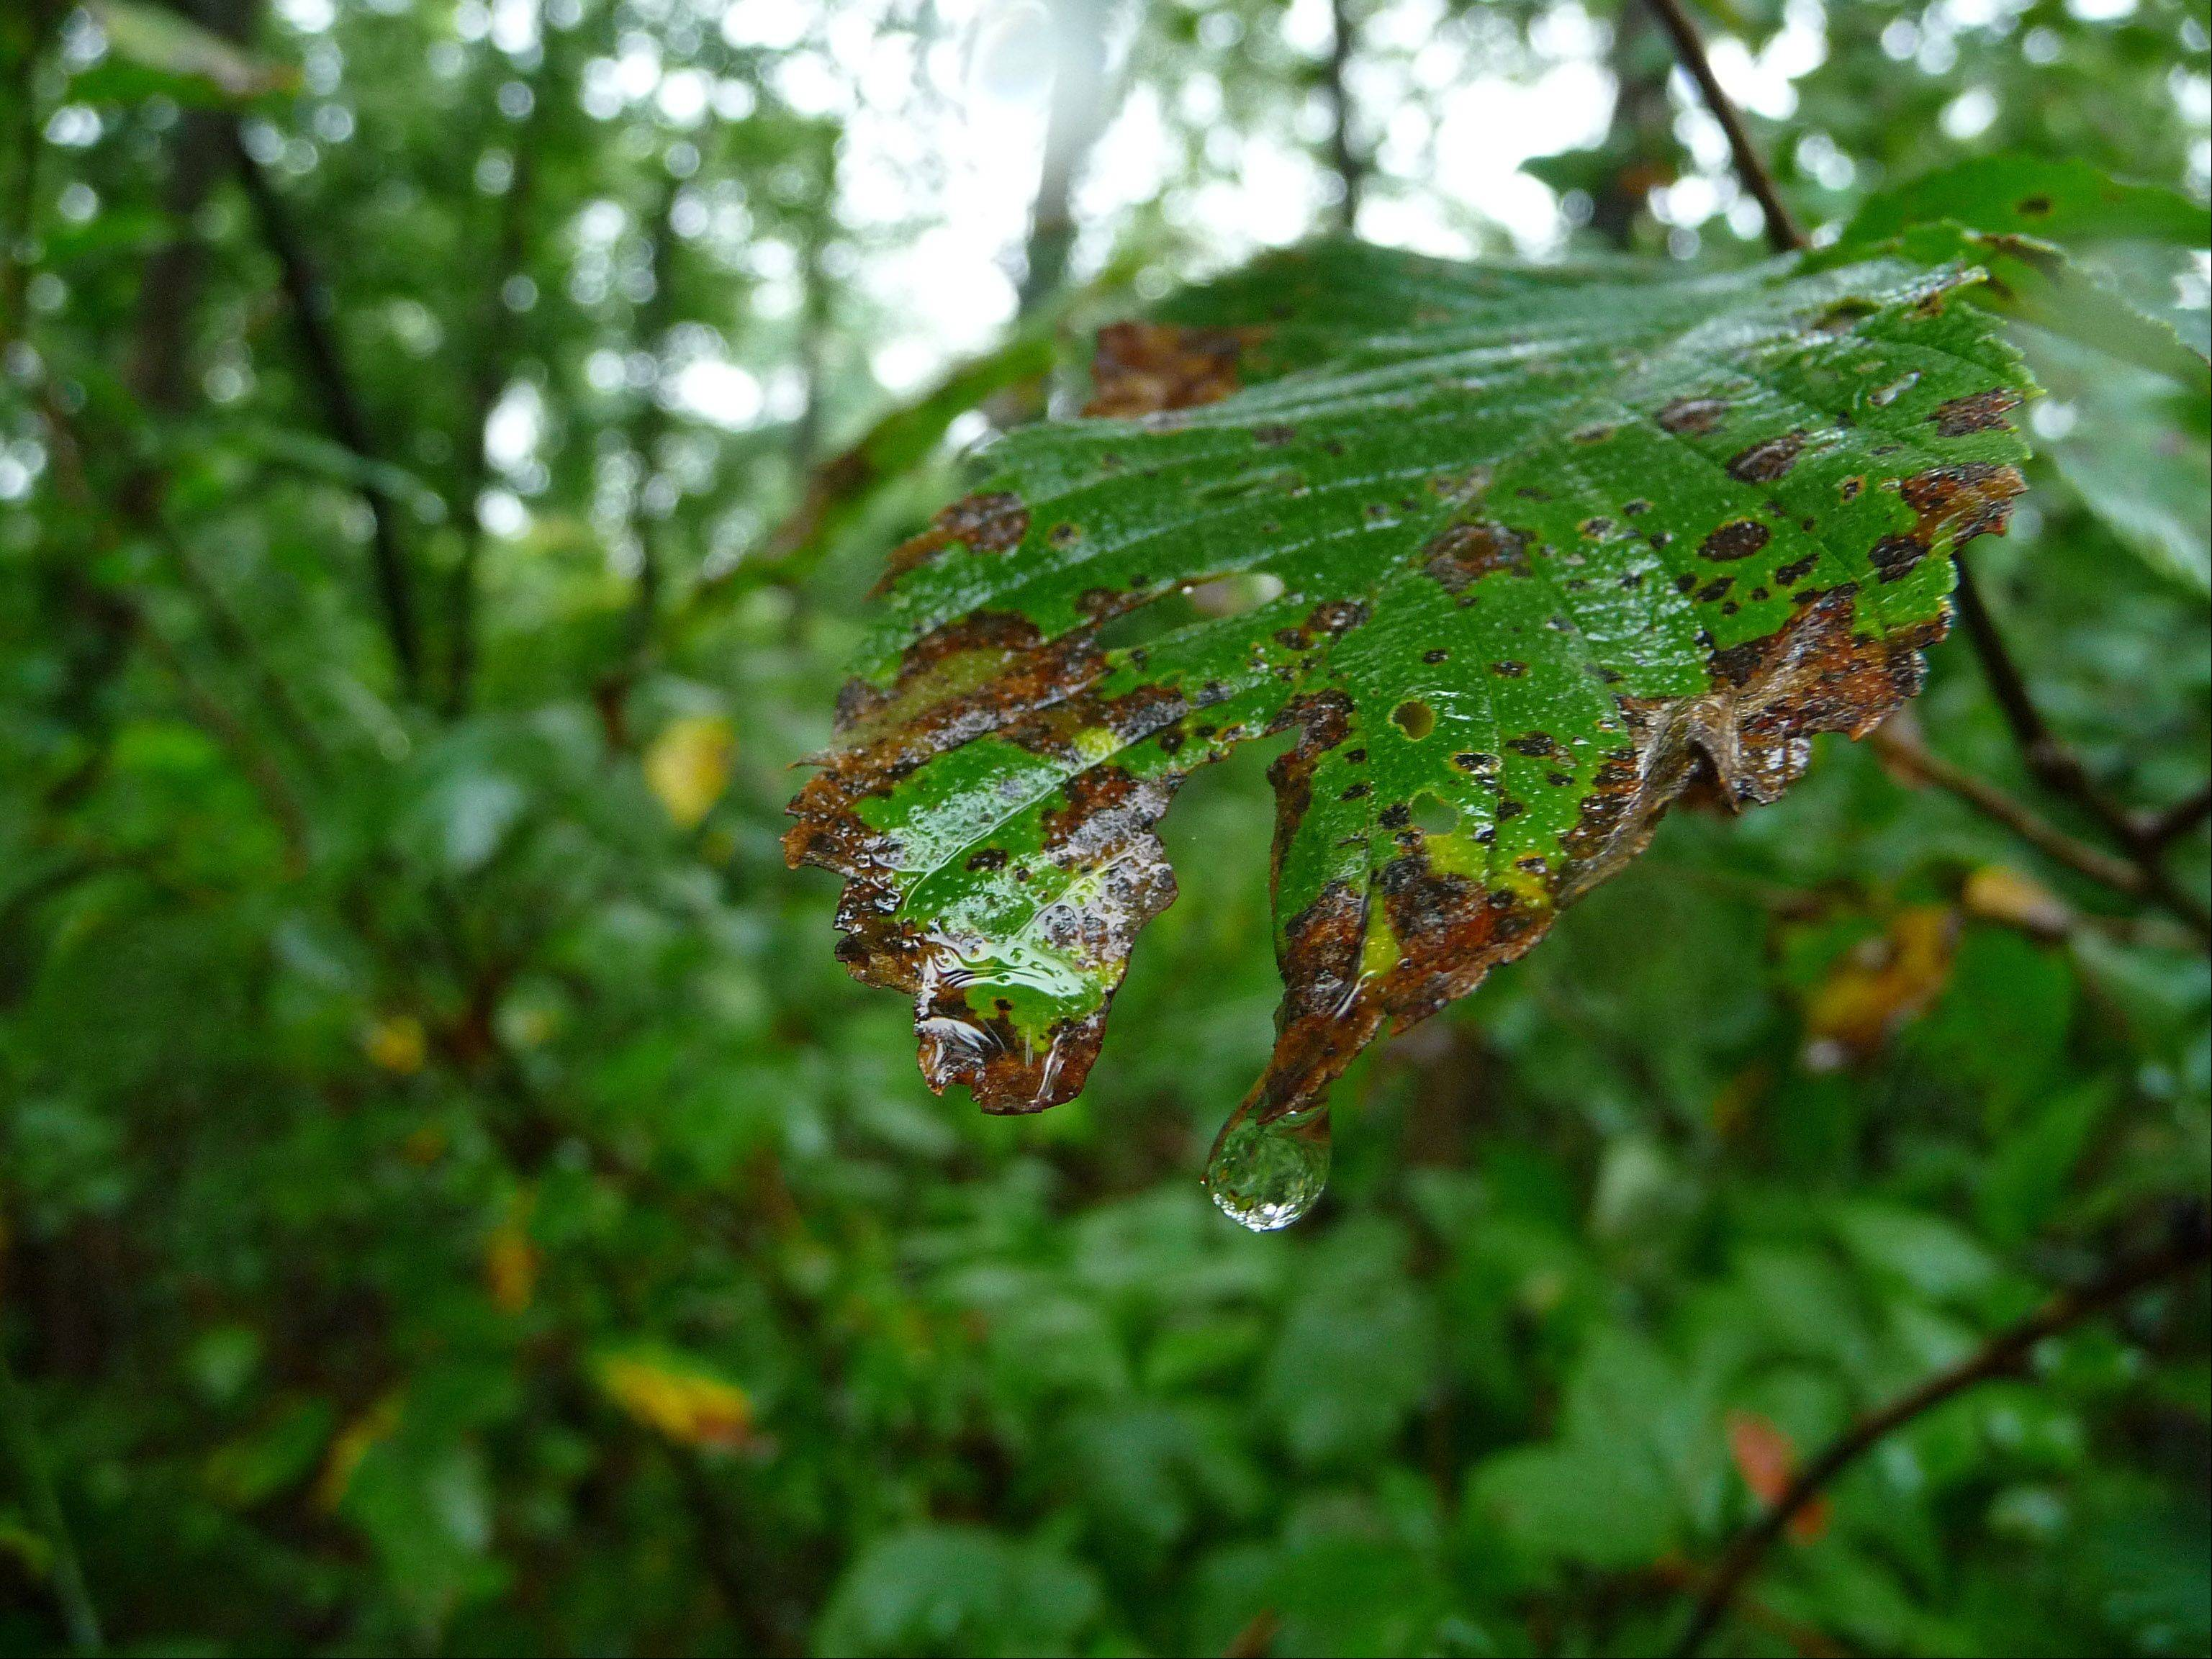 A drop of water hangs off a leaf in the Schaumburg forest preserve after a long rain.